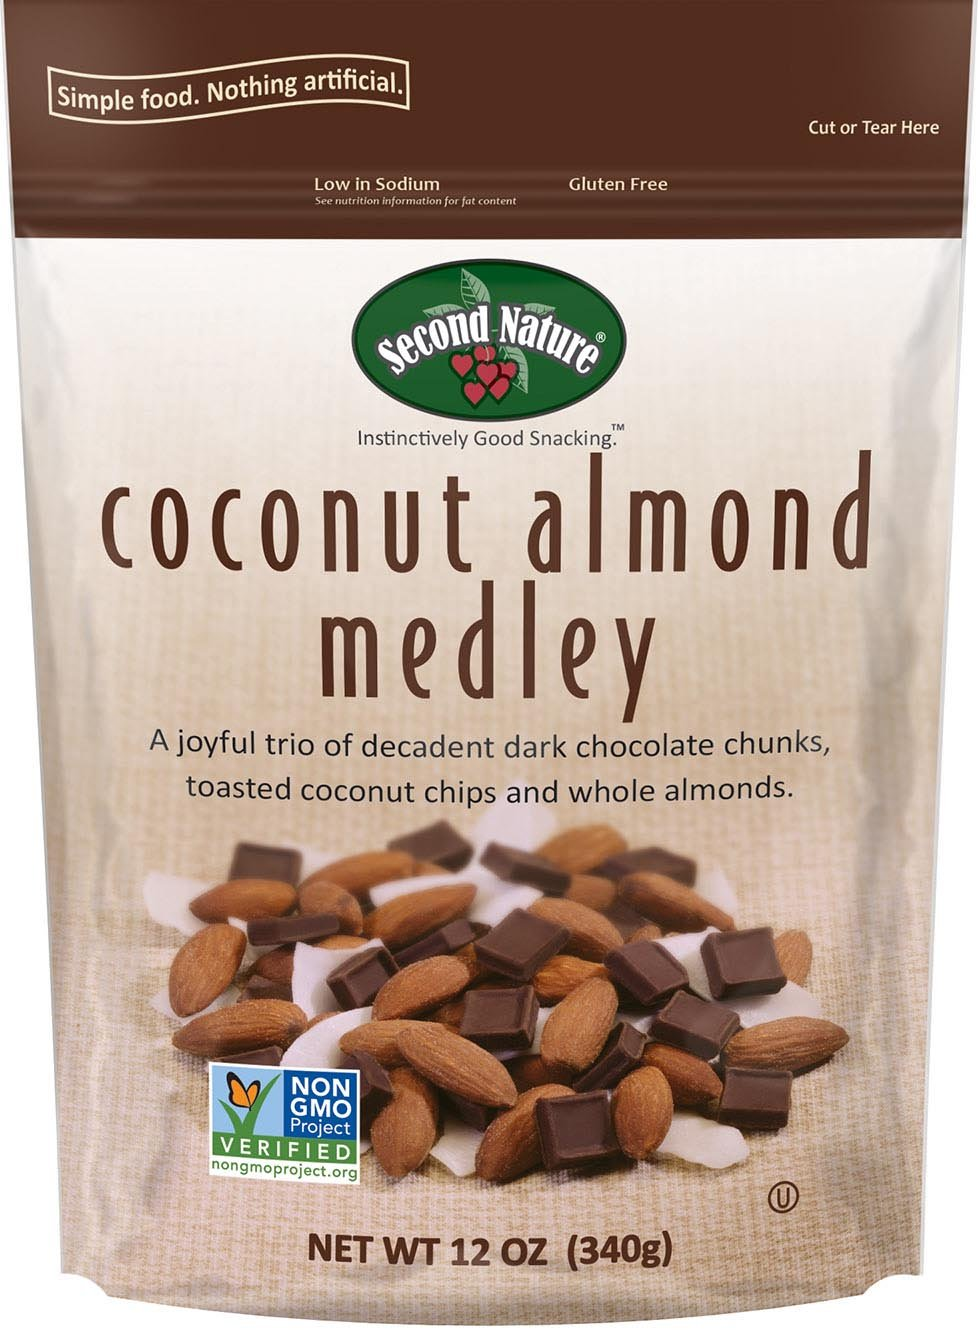 Second Nature Coconut Almond Medley Premium 12 oz Trail Mix in Resealable Pouch - Trio of Whole Almonds, Toasted Coconut Chips & Dark Chocolate Chunks - Non GMO Project Verified